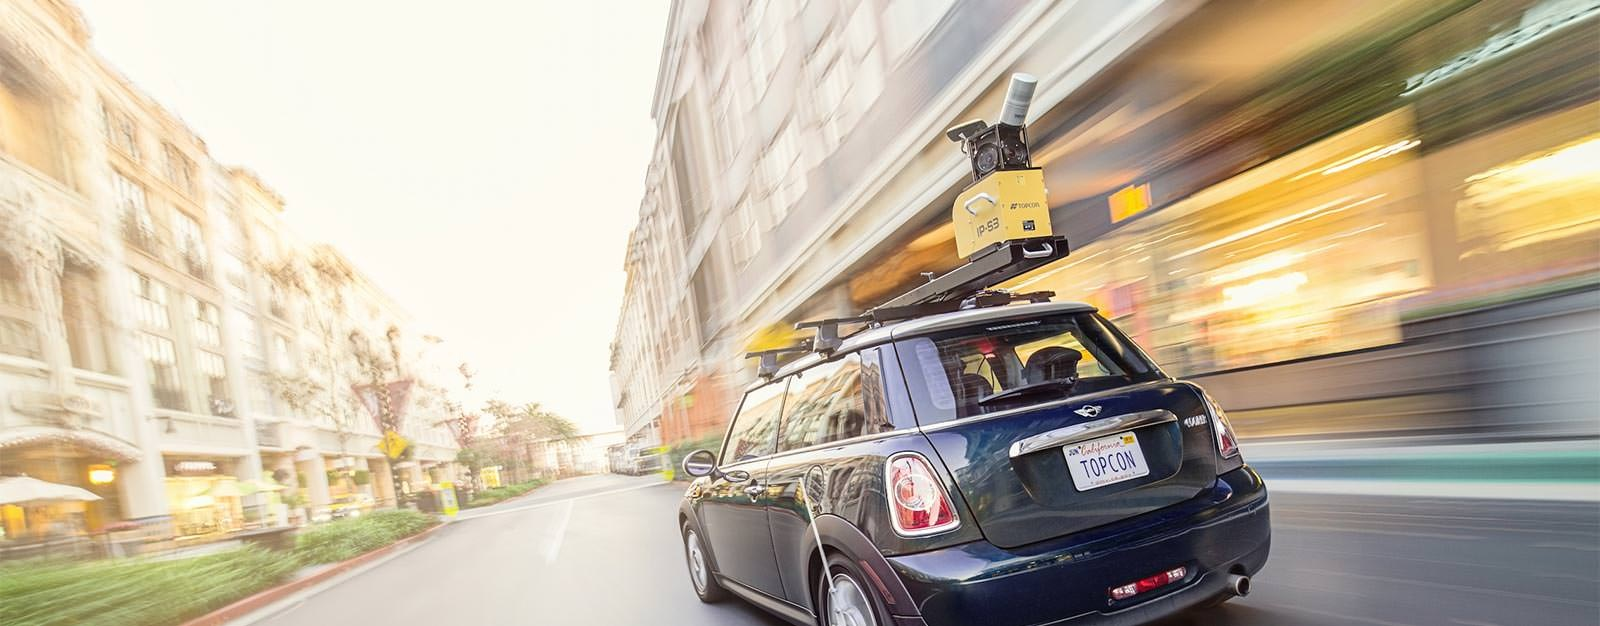 Mobile Mapping System